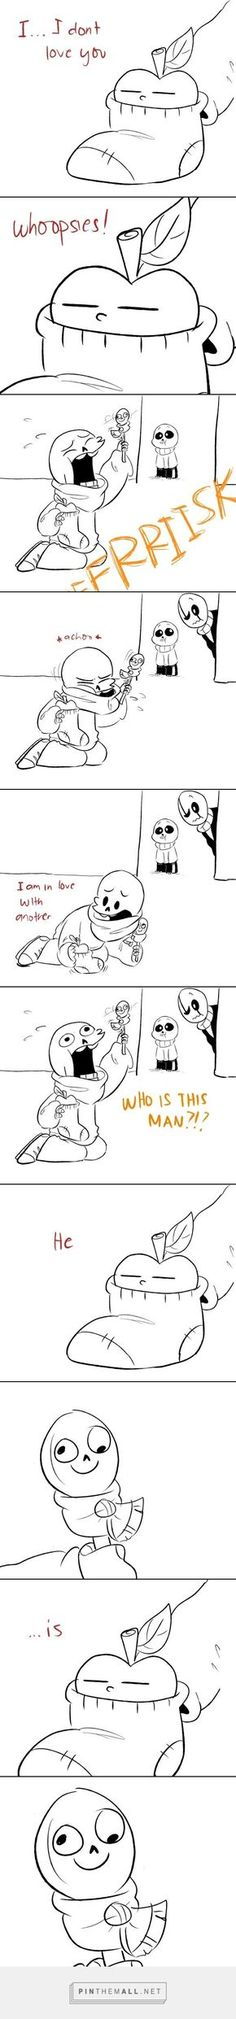 Undertale comic, Theatre of Papyrus, part 2 - created via https://pinthemall.net